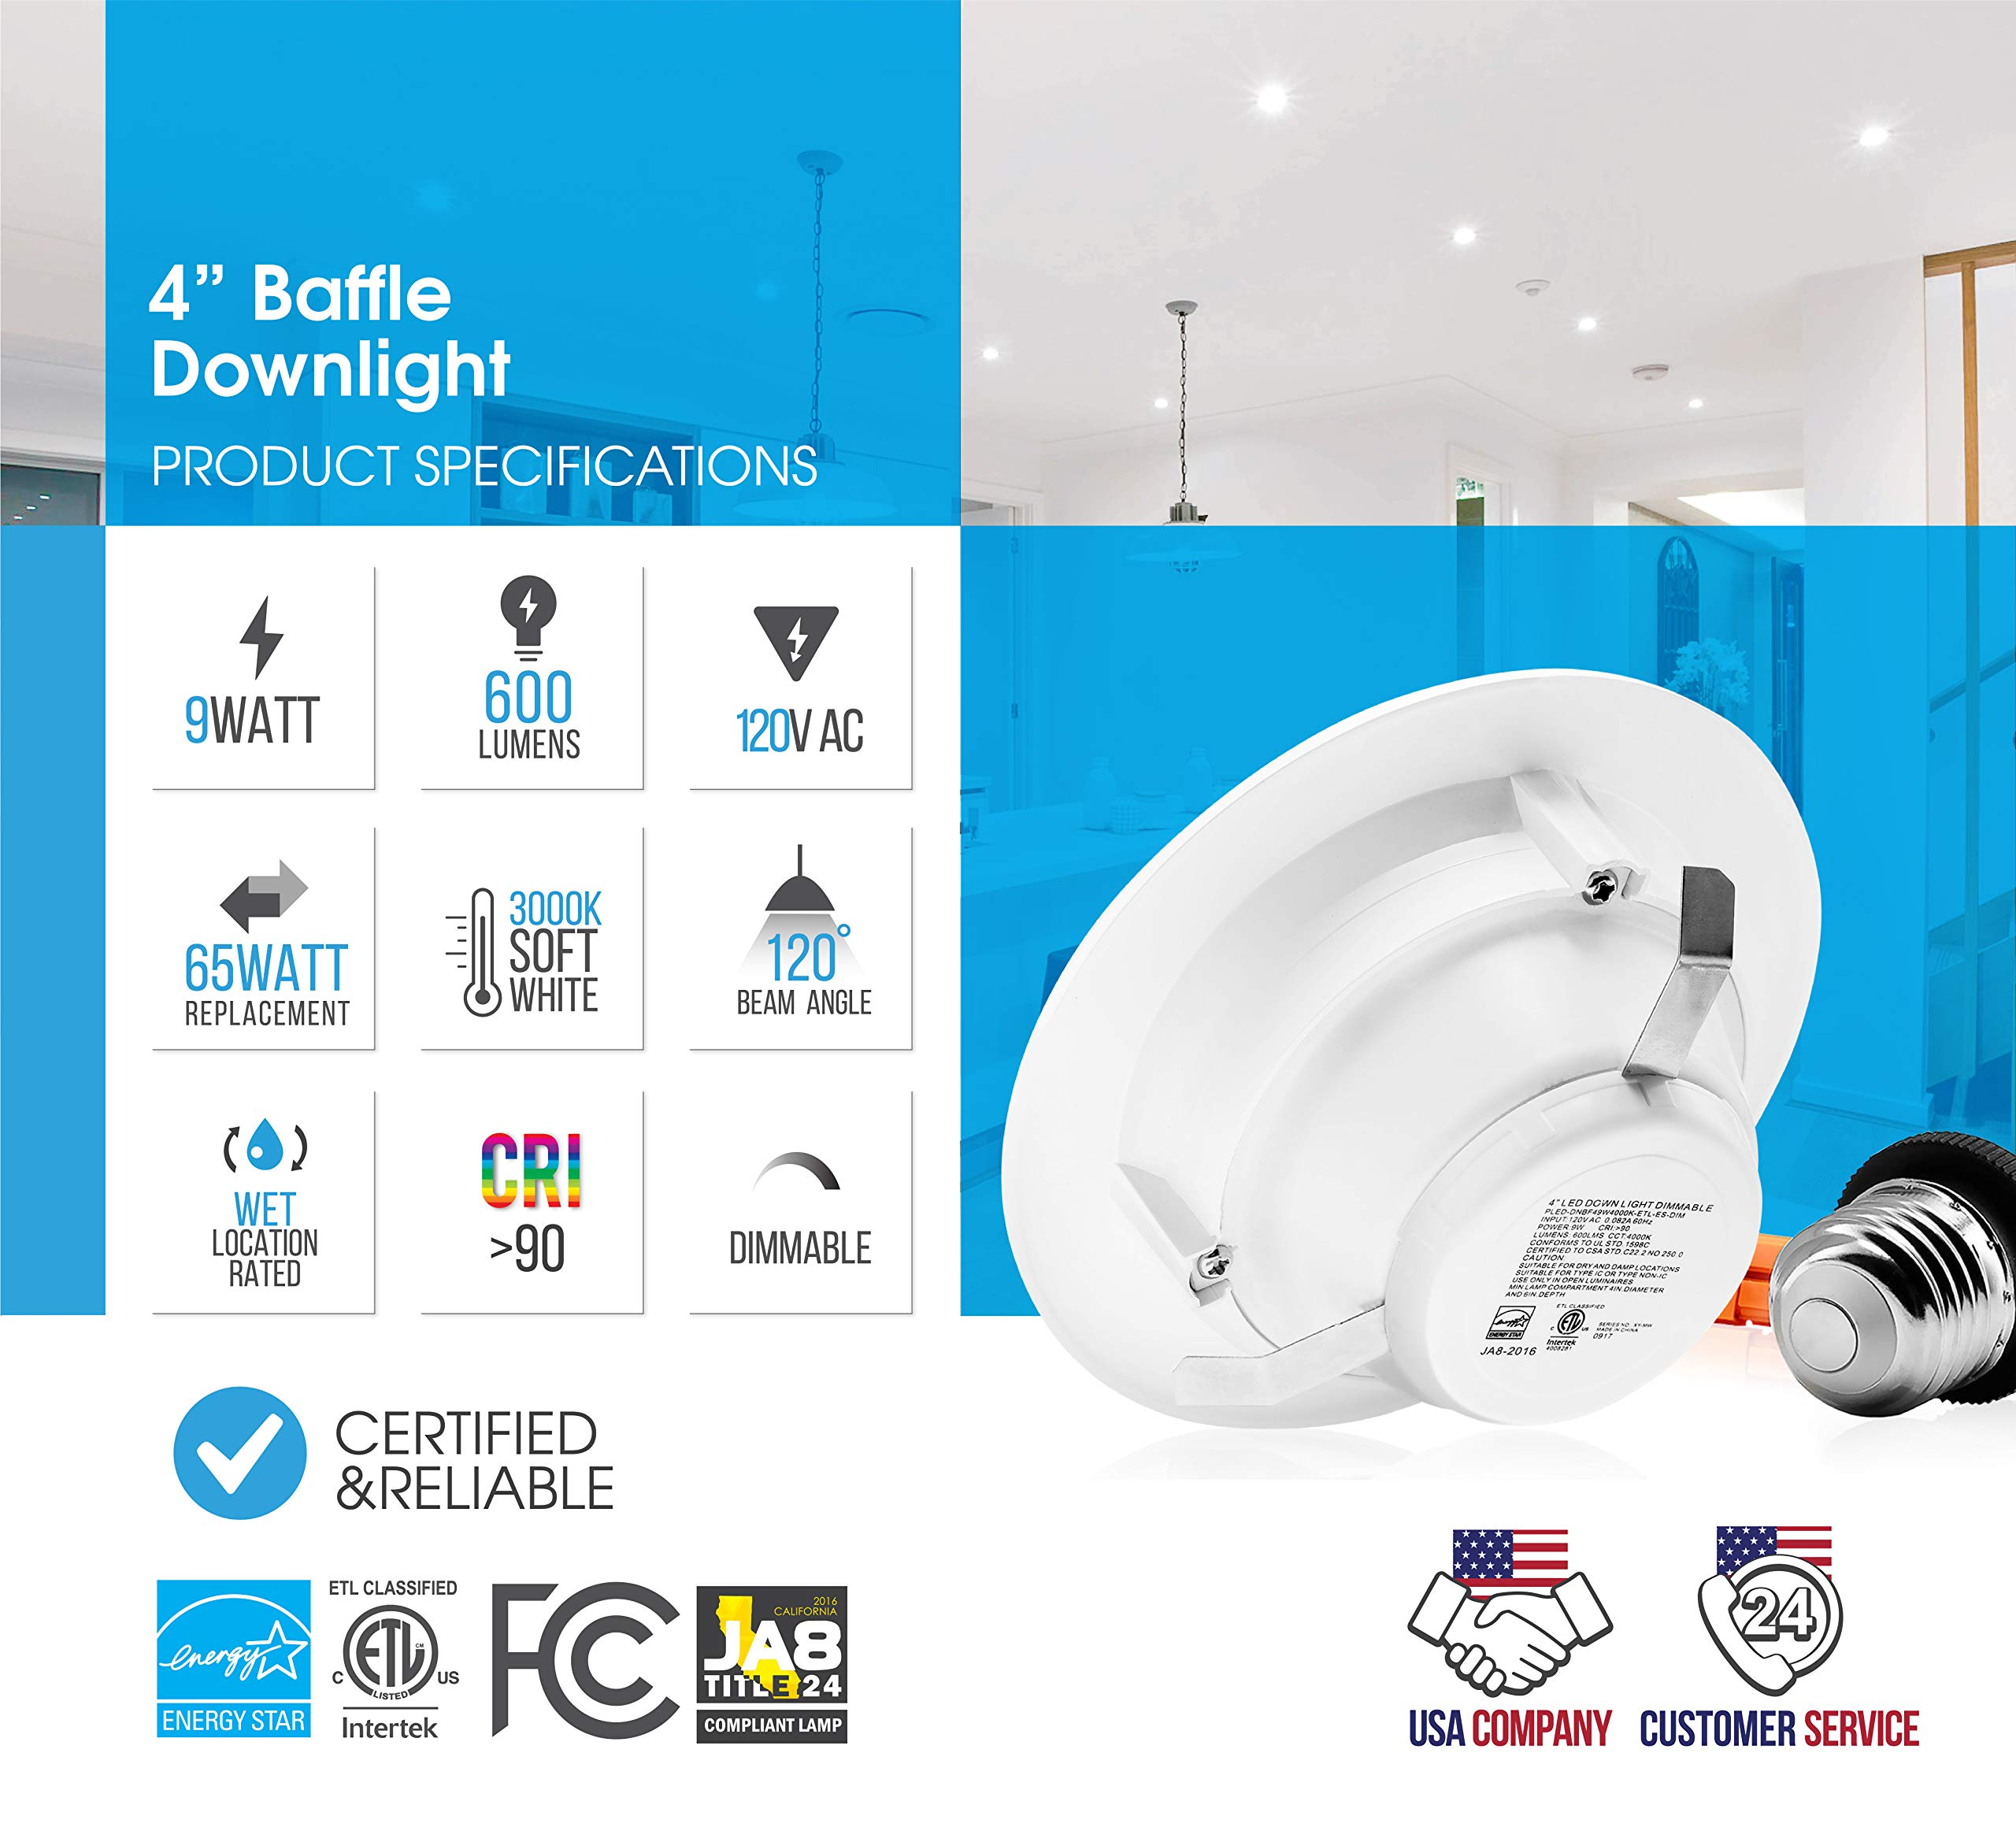 Parmida (12 Pack) 4'' inch Dimmable LED Downlight, 9W (65W Replacement), Baffle Design, 3000K (Soft White), 600lm, Energy Star & ETL-Listed, Retrofit LED Recessed Lighting Fixture, LED Trim by Parmida LED Technologies (Image #3)